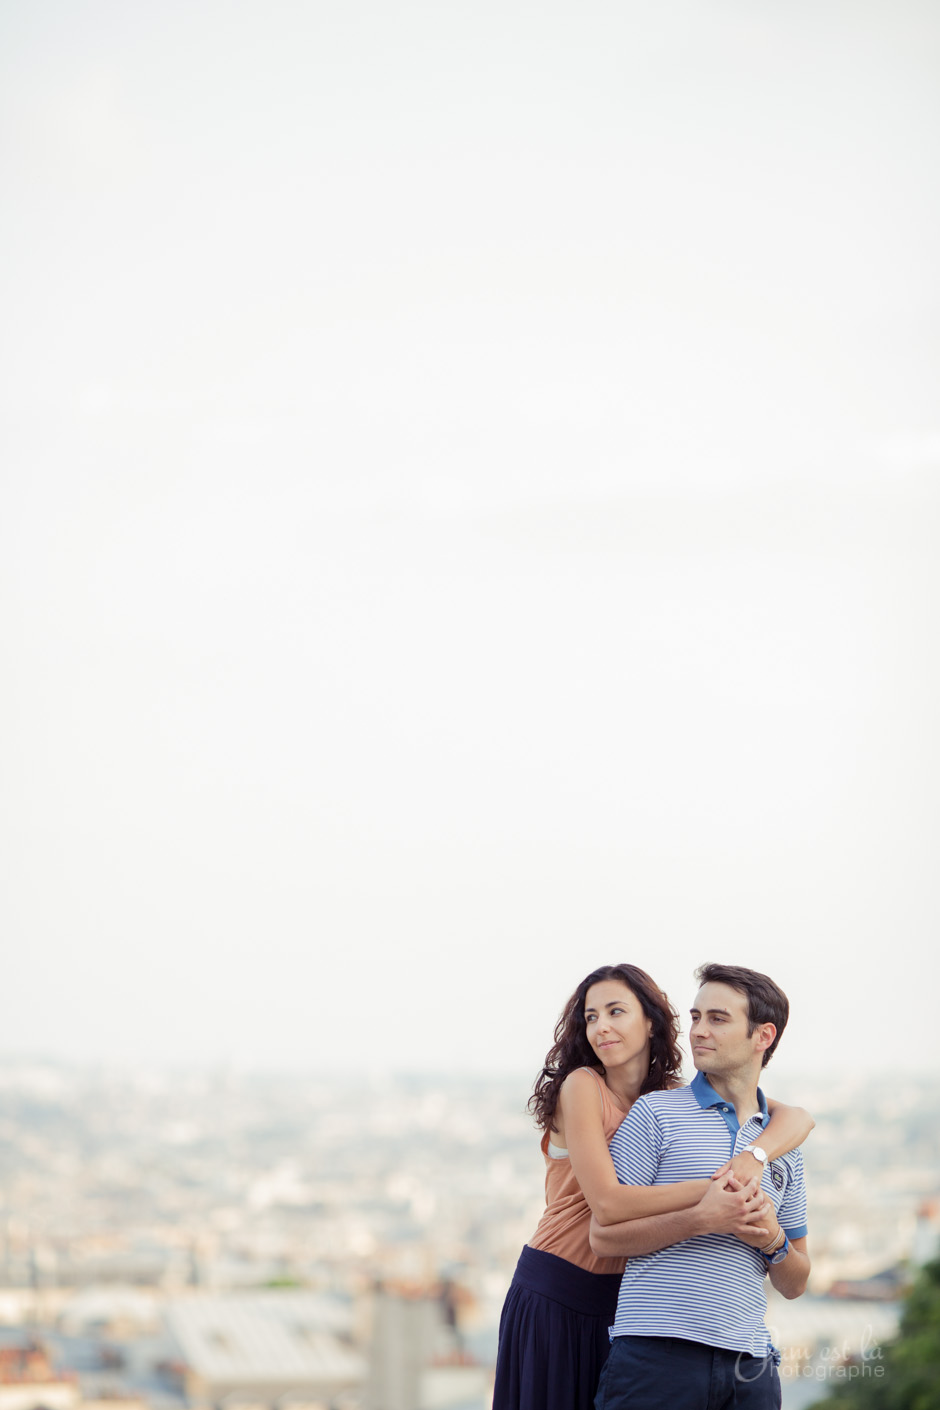 photogrpahe-seance-couple-engagement-an-1135